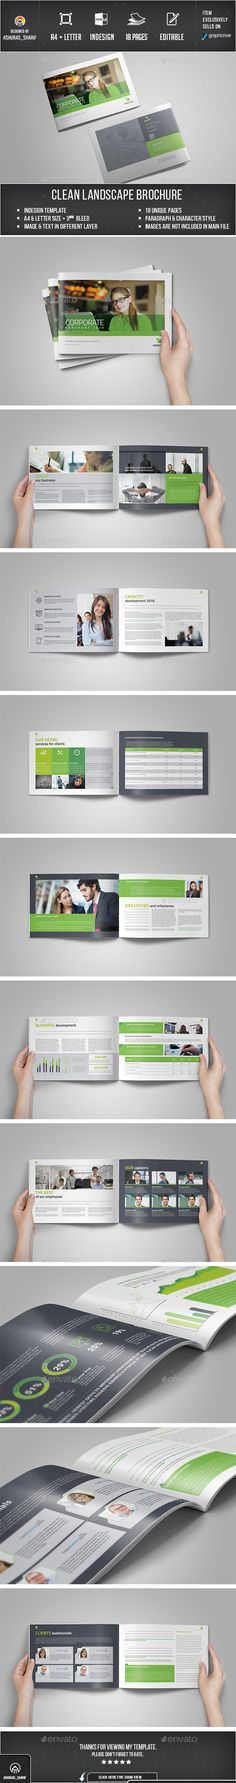 Brochure - Corporate Brochures FEATURES: Easy Customization and Editable A4 and Letter Size with 3mm bleed 18 pages Paragraph Style, Carecter style included Images, text, Objects are Different Layers Design in 300 DPI Resolution Simple Color Swatch Option for Apply Whole Documents Indesign files Images are not Included working file adobe cc CS4,CS5,CS6 & CC or latter version supported